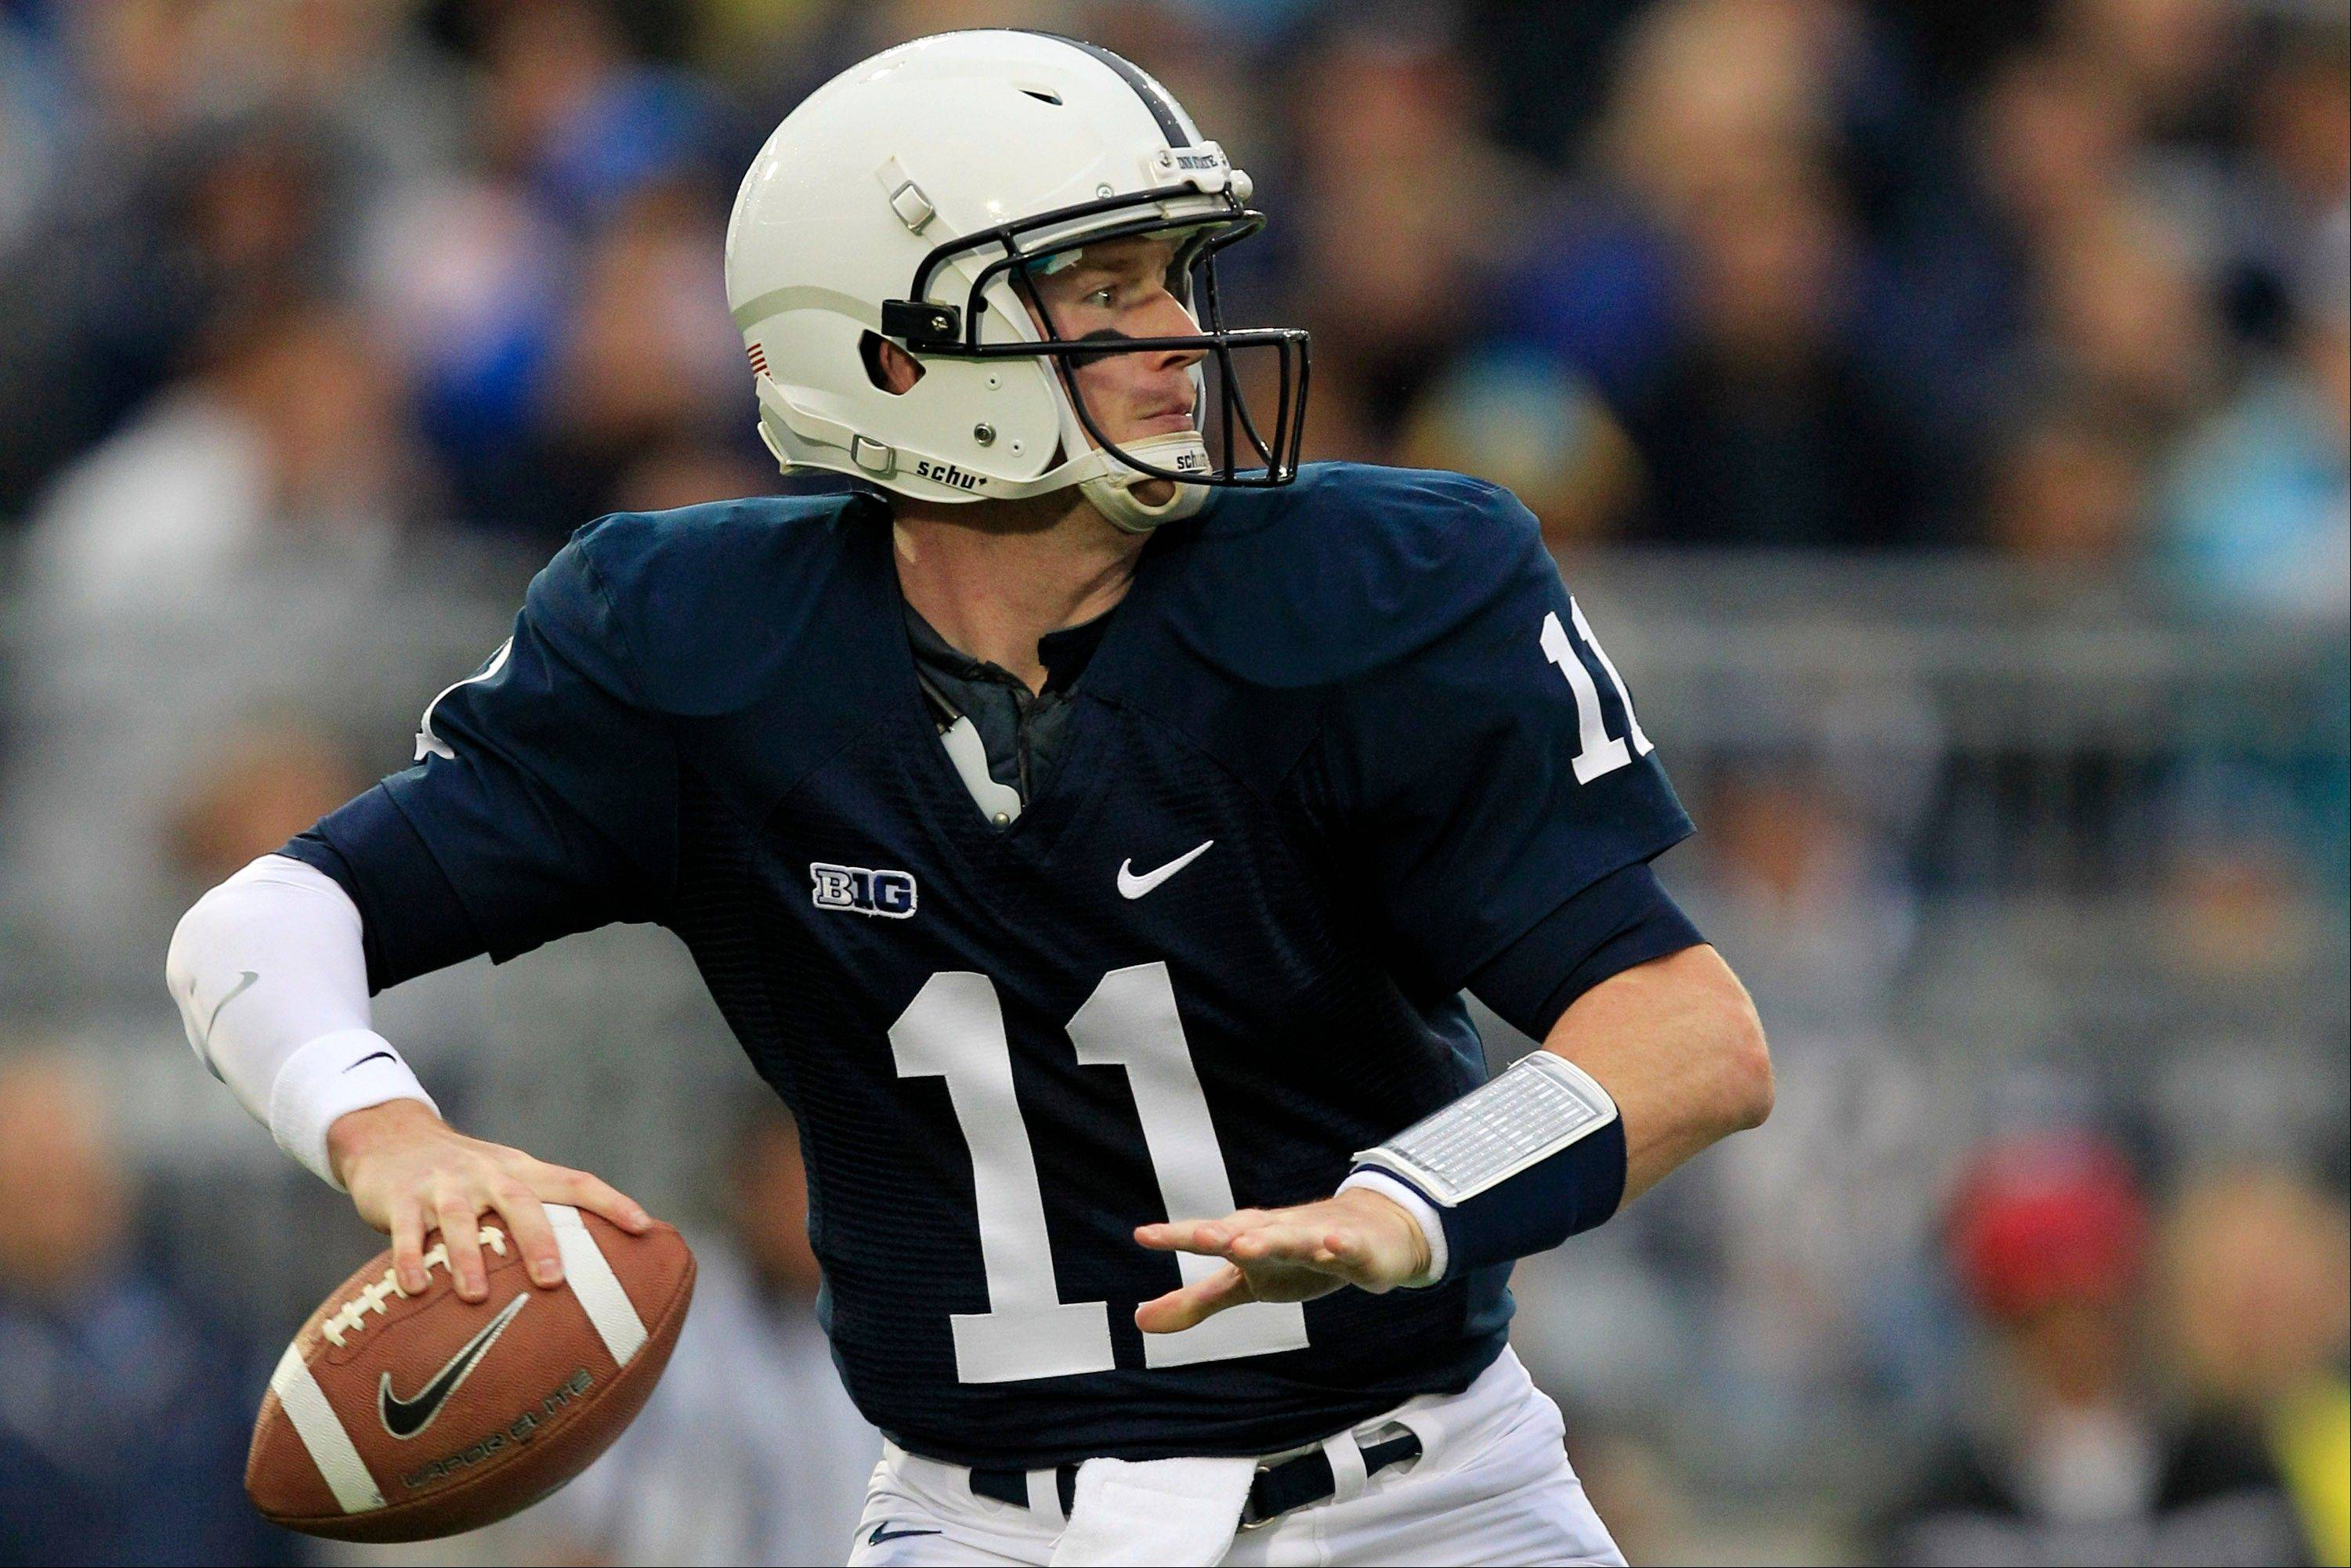 Penn State quarterback Matthew McGloin looks to pass Satuday against Temple in State College, Pa.